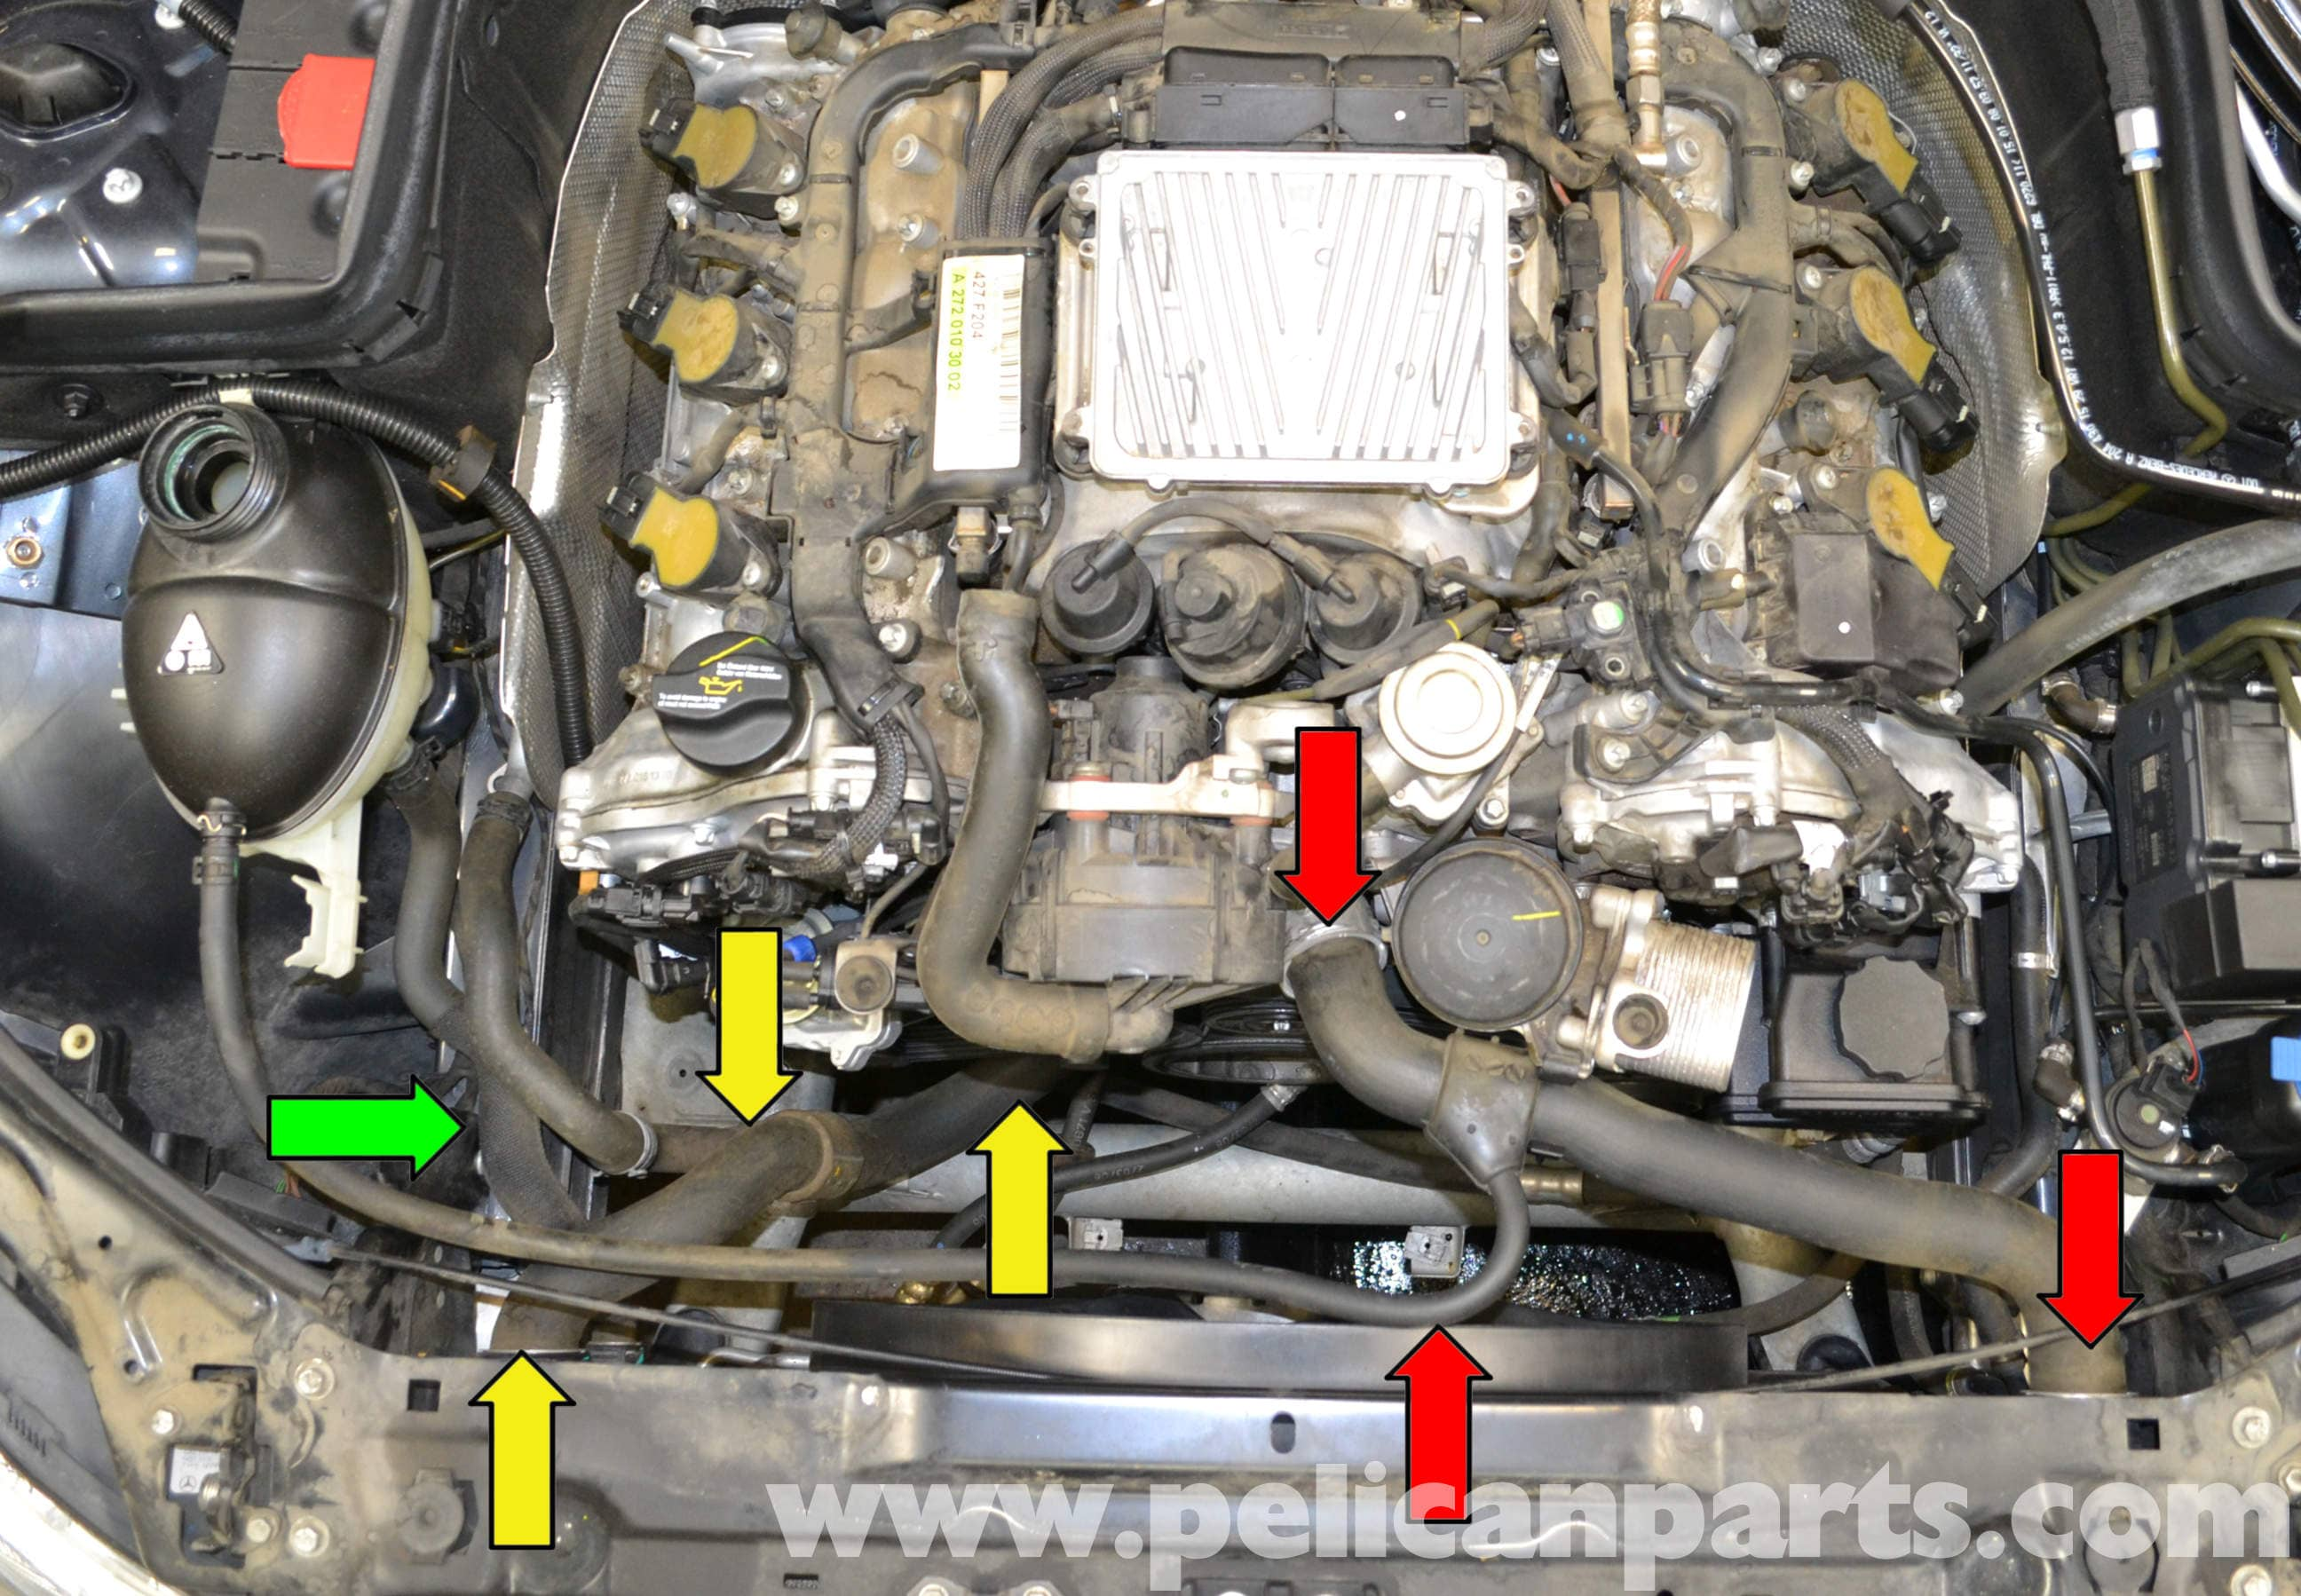 Mercedes benz w204 coolant hose replacement 2008 2014 for Mercedes benz coolant